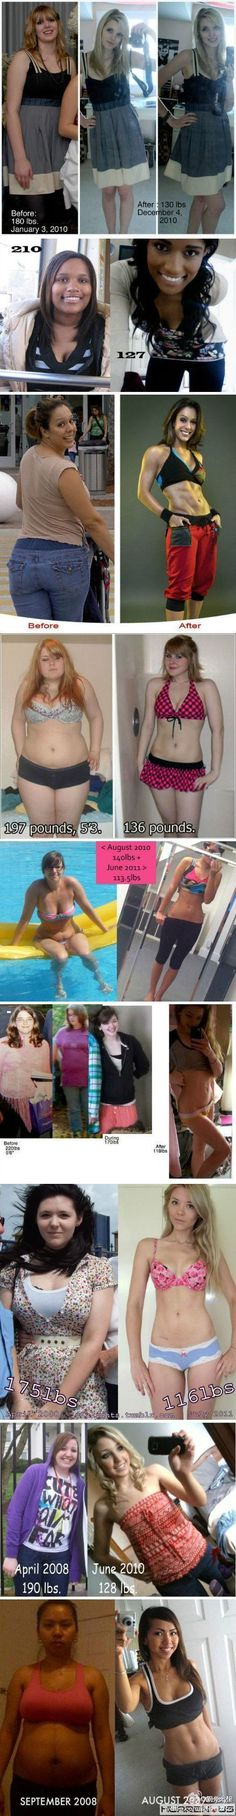 The 3 Week Diet is an extreme rapid weight loss program that can help you lose up to 23 pounds of pure body fat in just 3 weeks! Get your customized diet plan ...